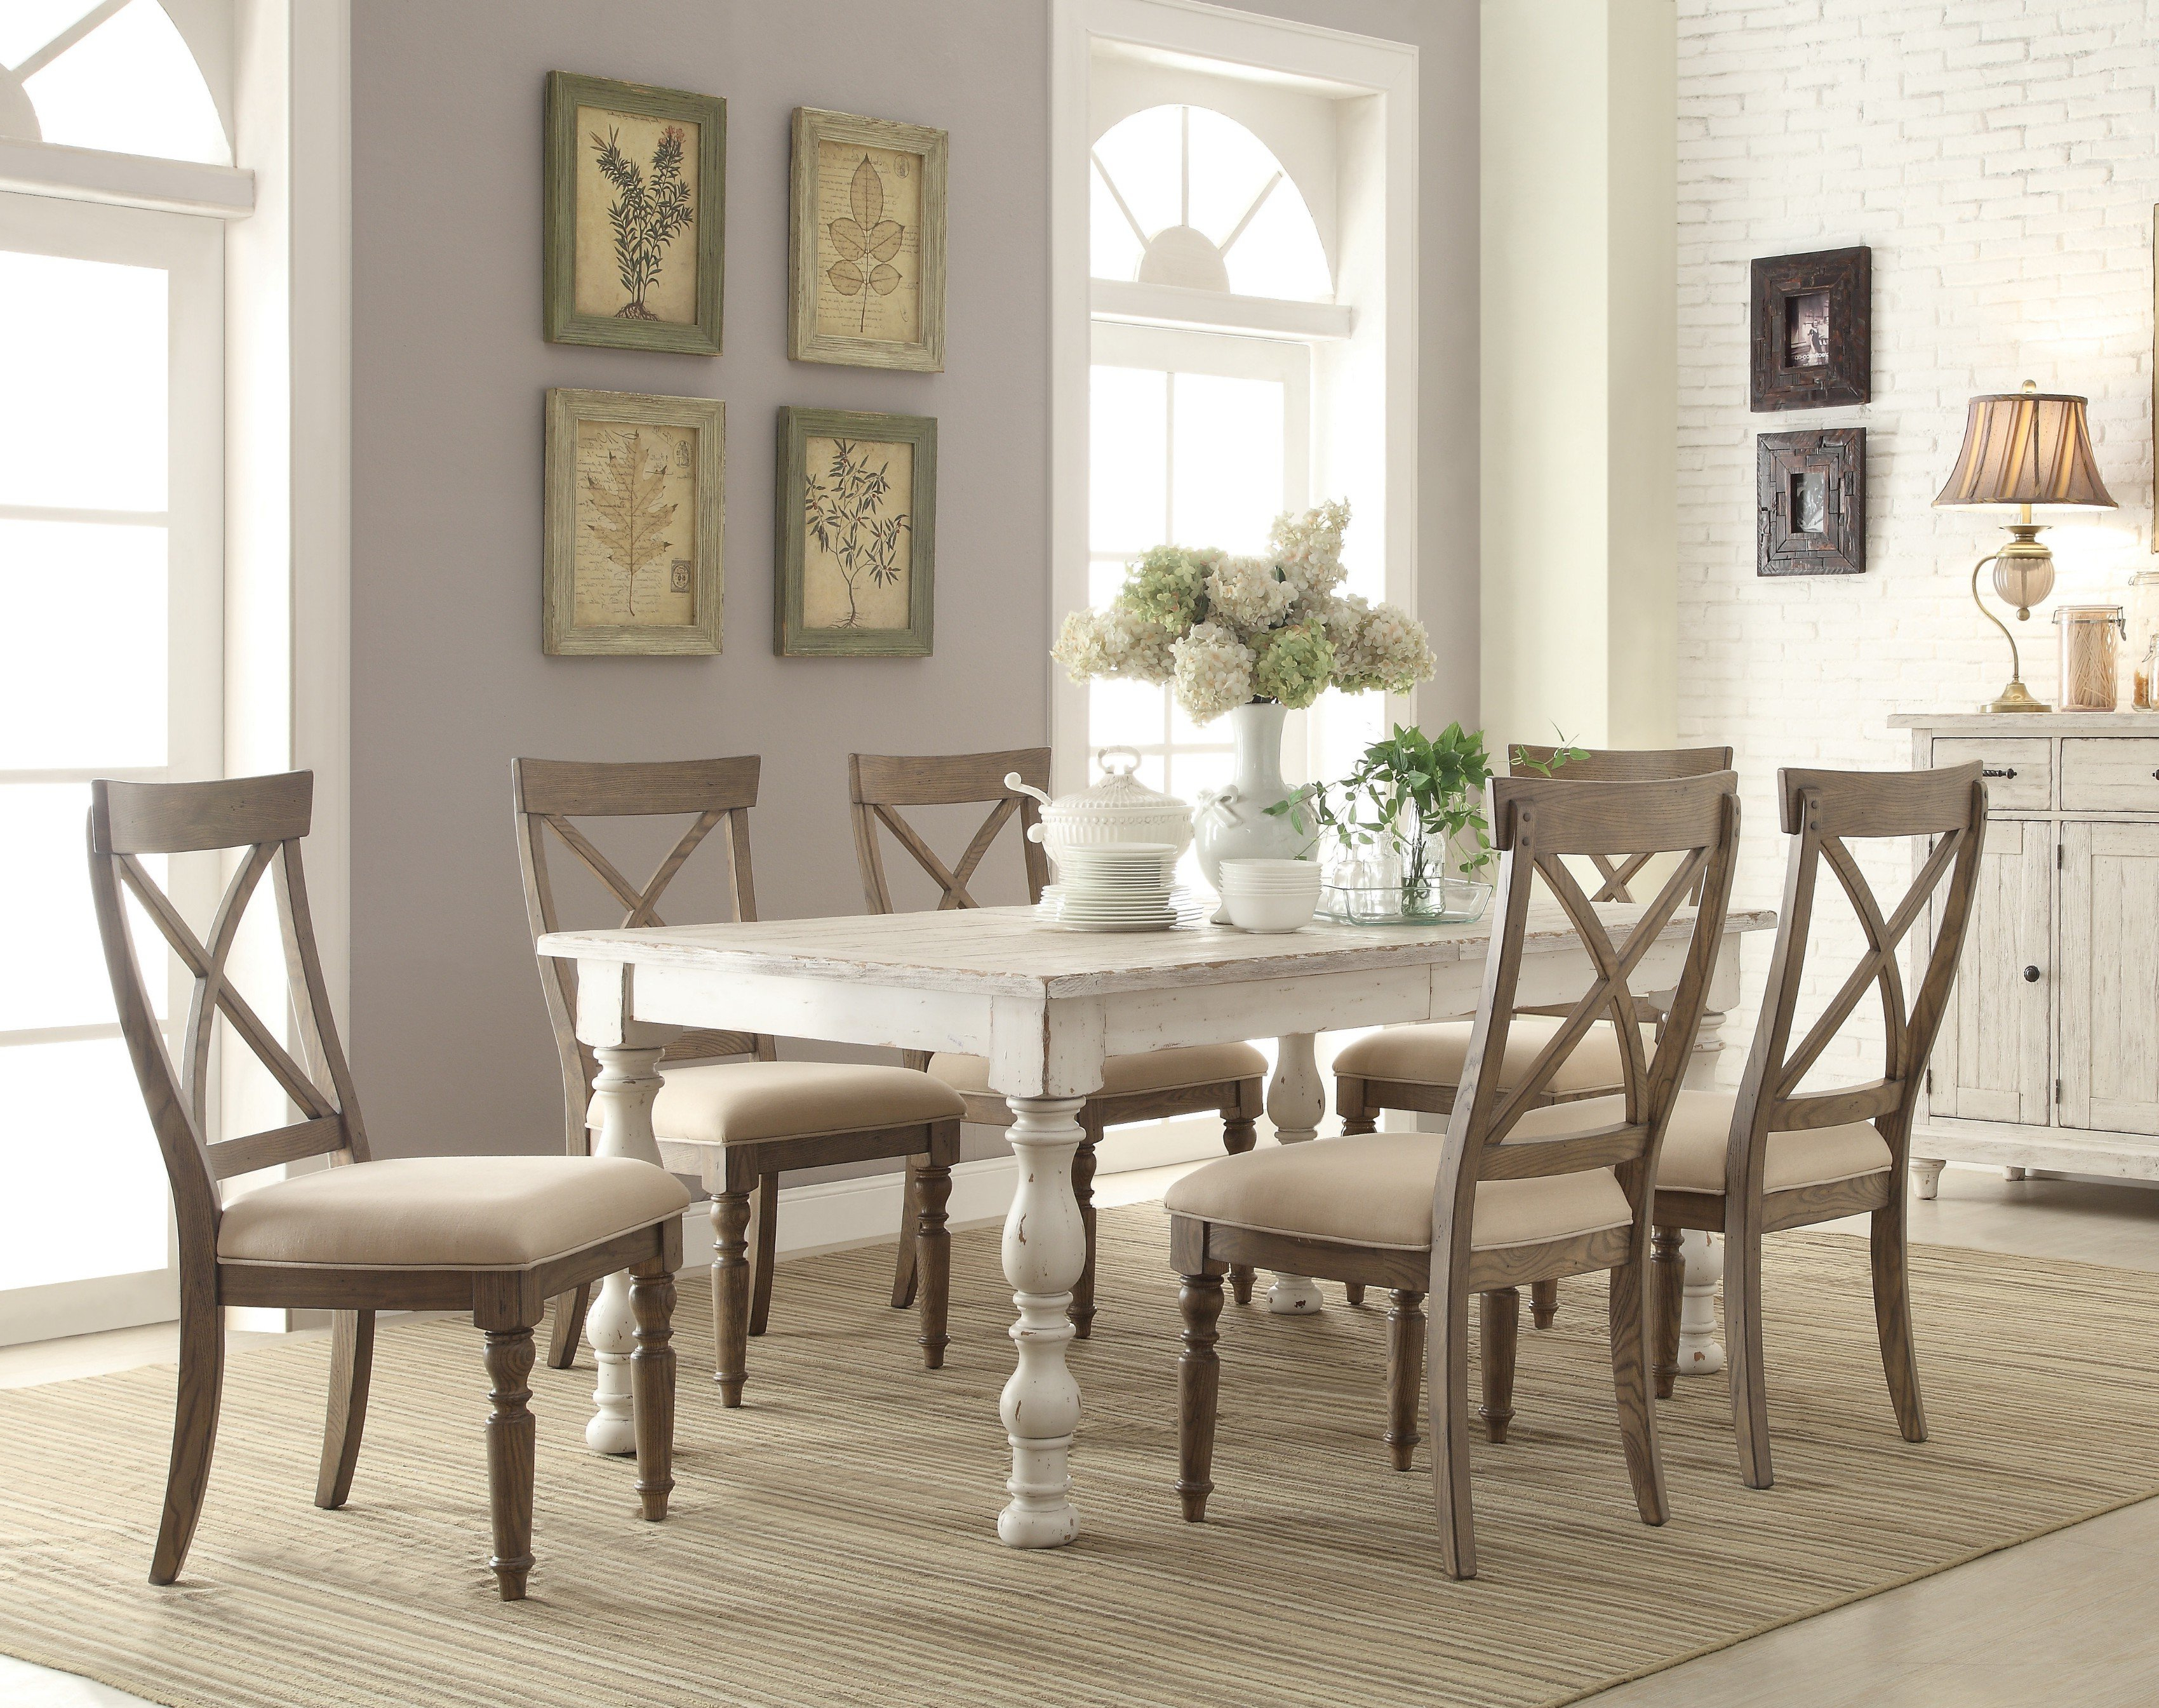 Mckenzie 7 Piece Extendable Dining Set Pertaining To Most Current Rarick 5 Piece Solid Wood Dining Sets (Set Of 5) (View 7 of 20)